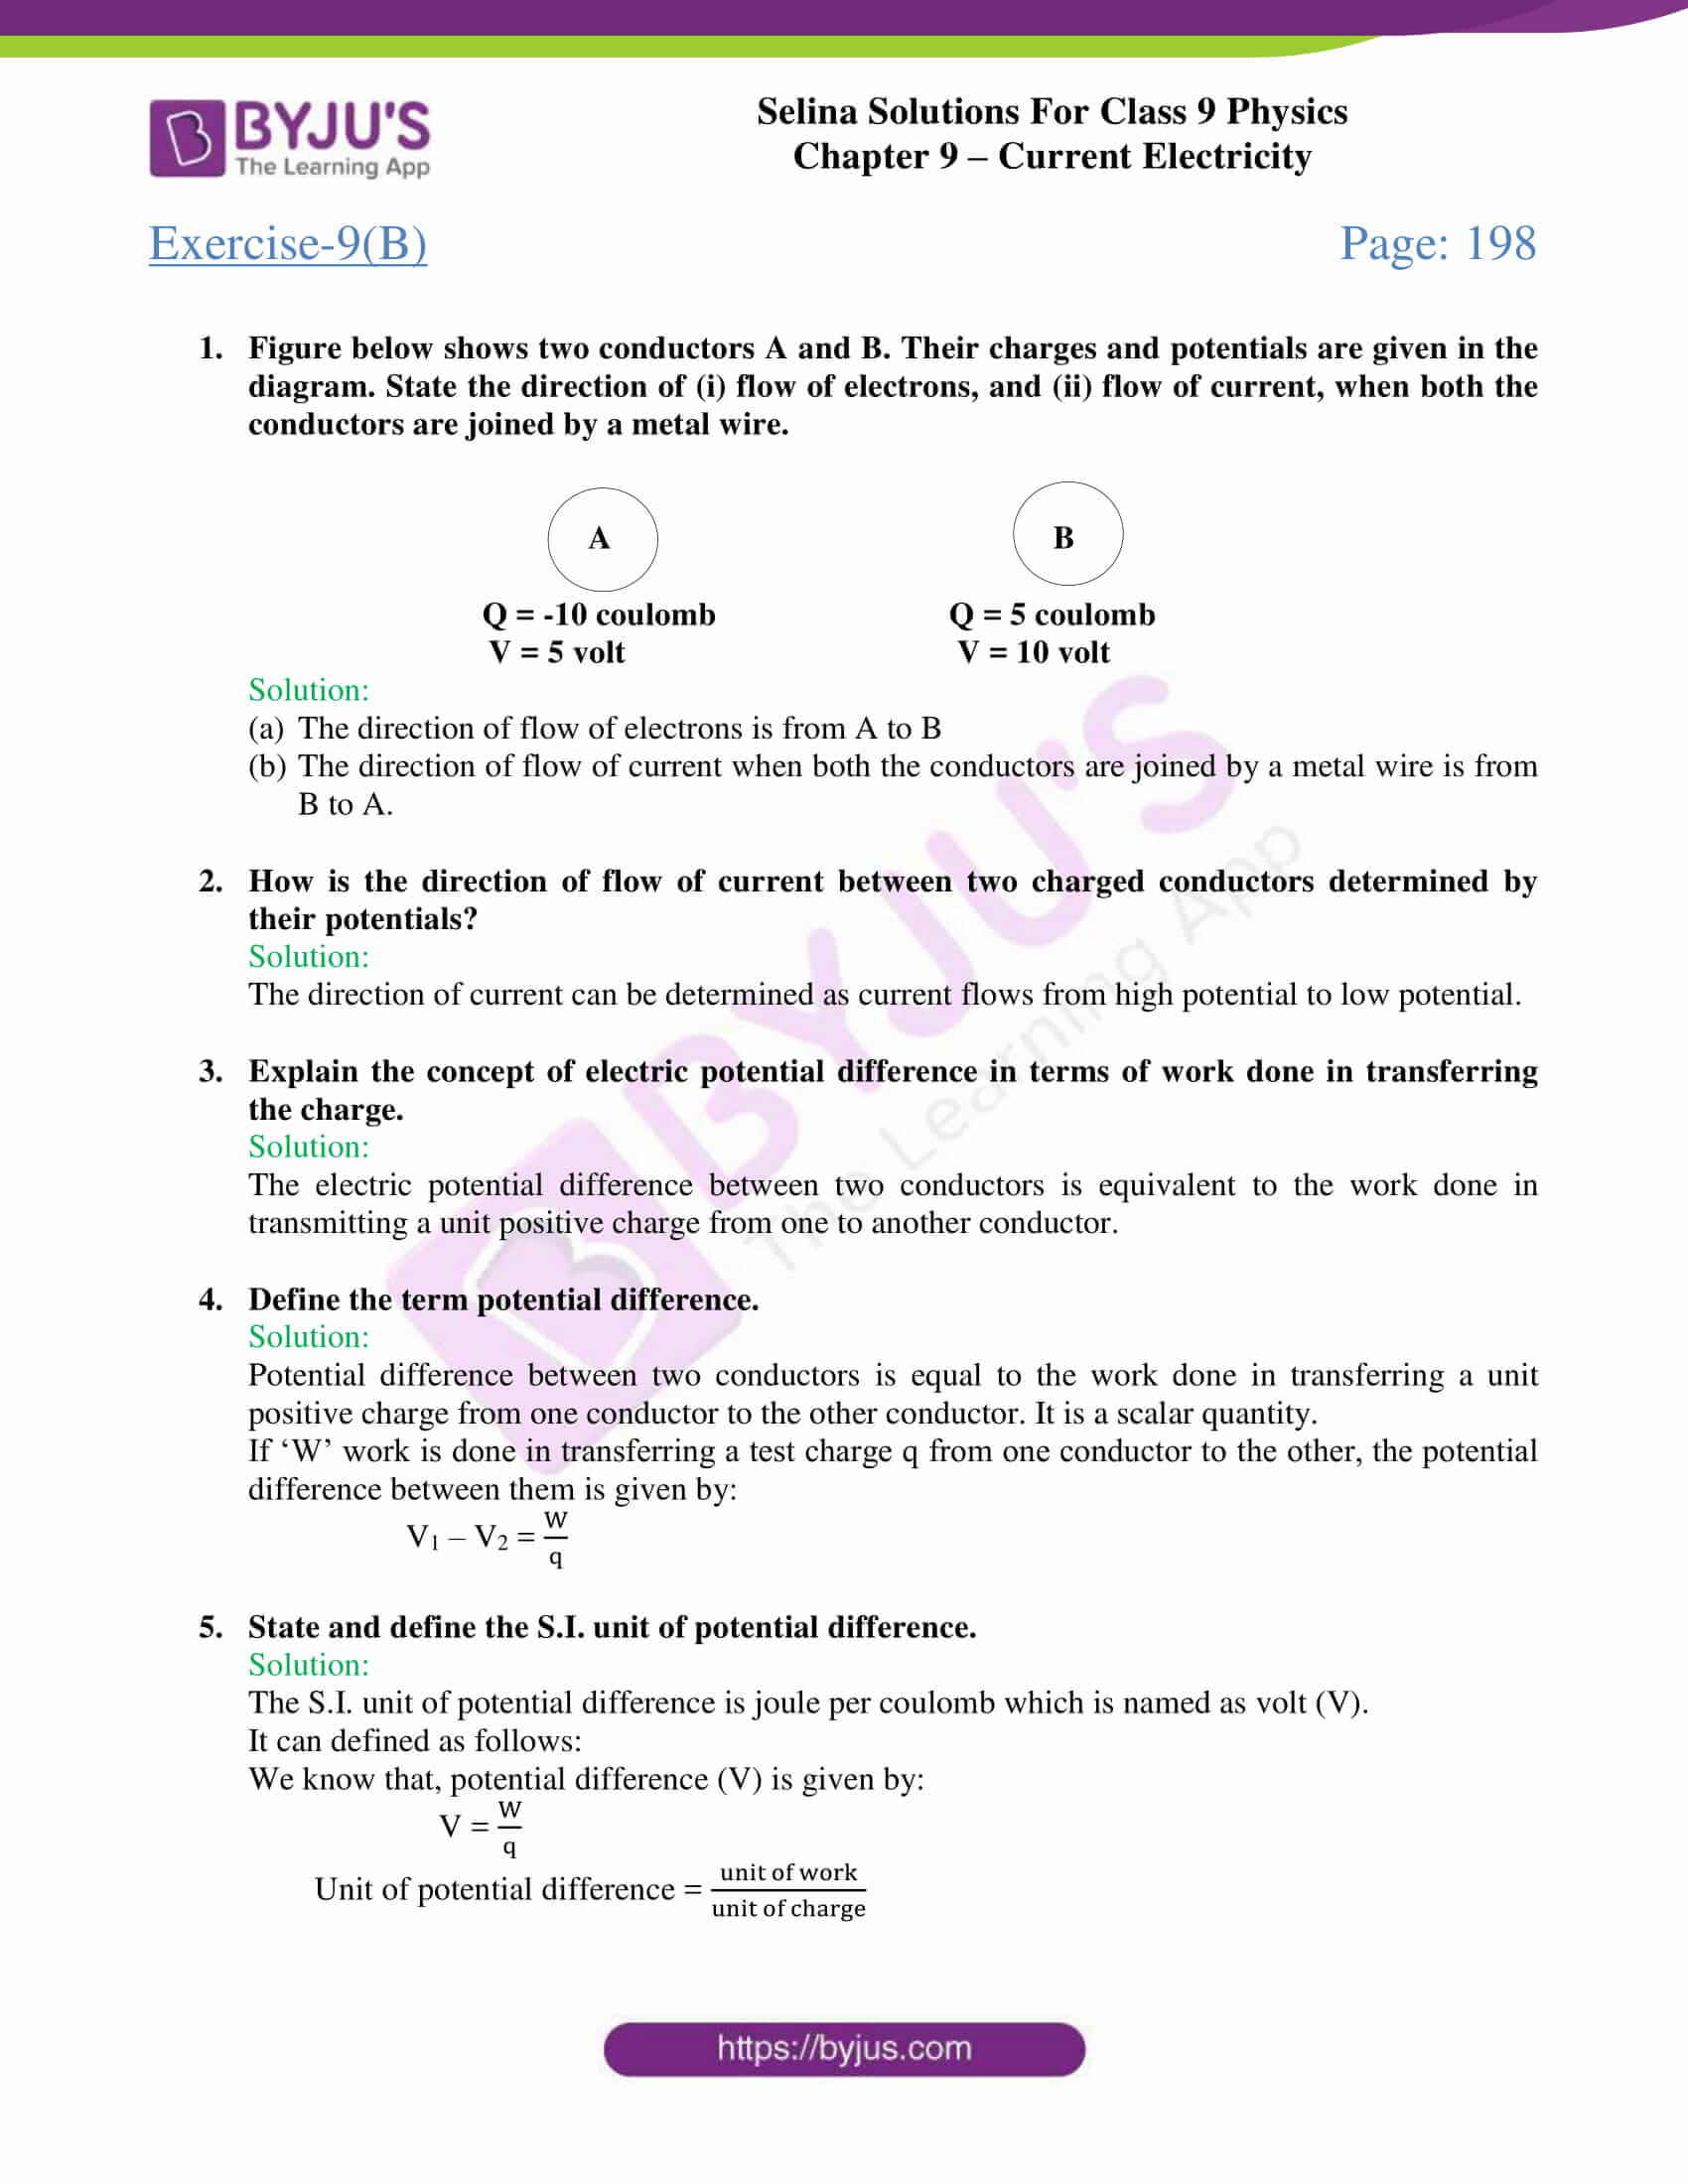 selina solutions class 9 physics chapter 9 Current Electricity part 09